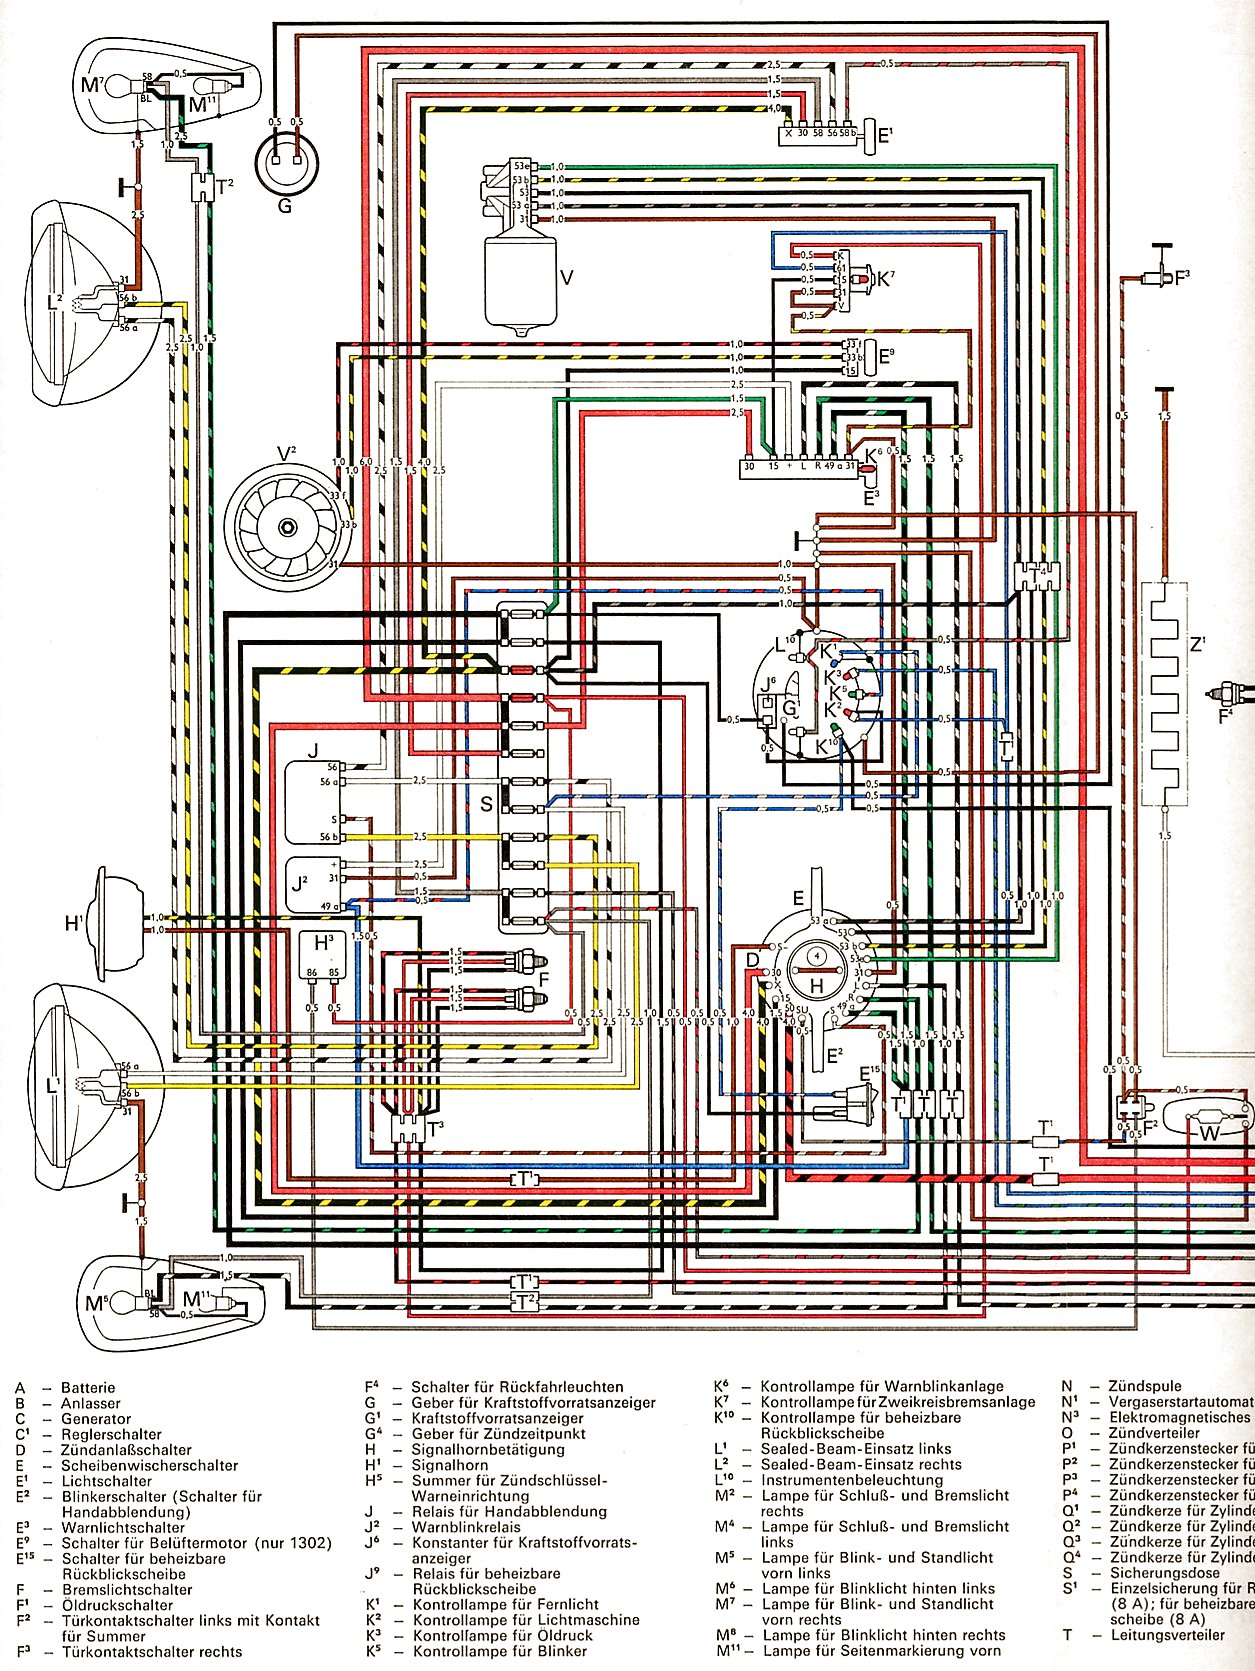 1300_and_1302_USA_from_August_1971 1 wiring help 1974 vw beetle shoptalkforums com vw bug wiring diagram at webbmarketing.co